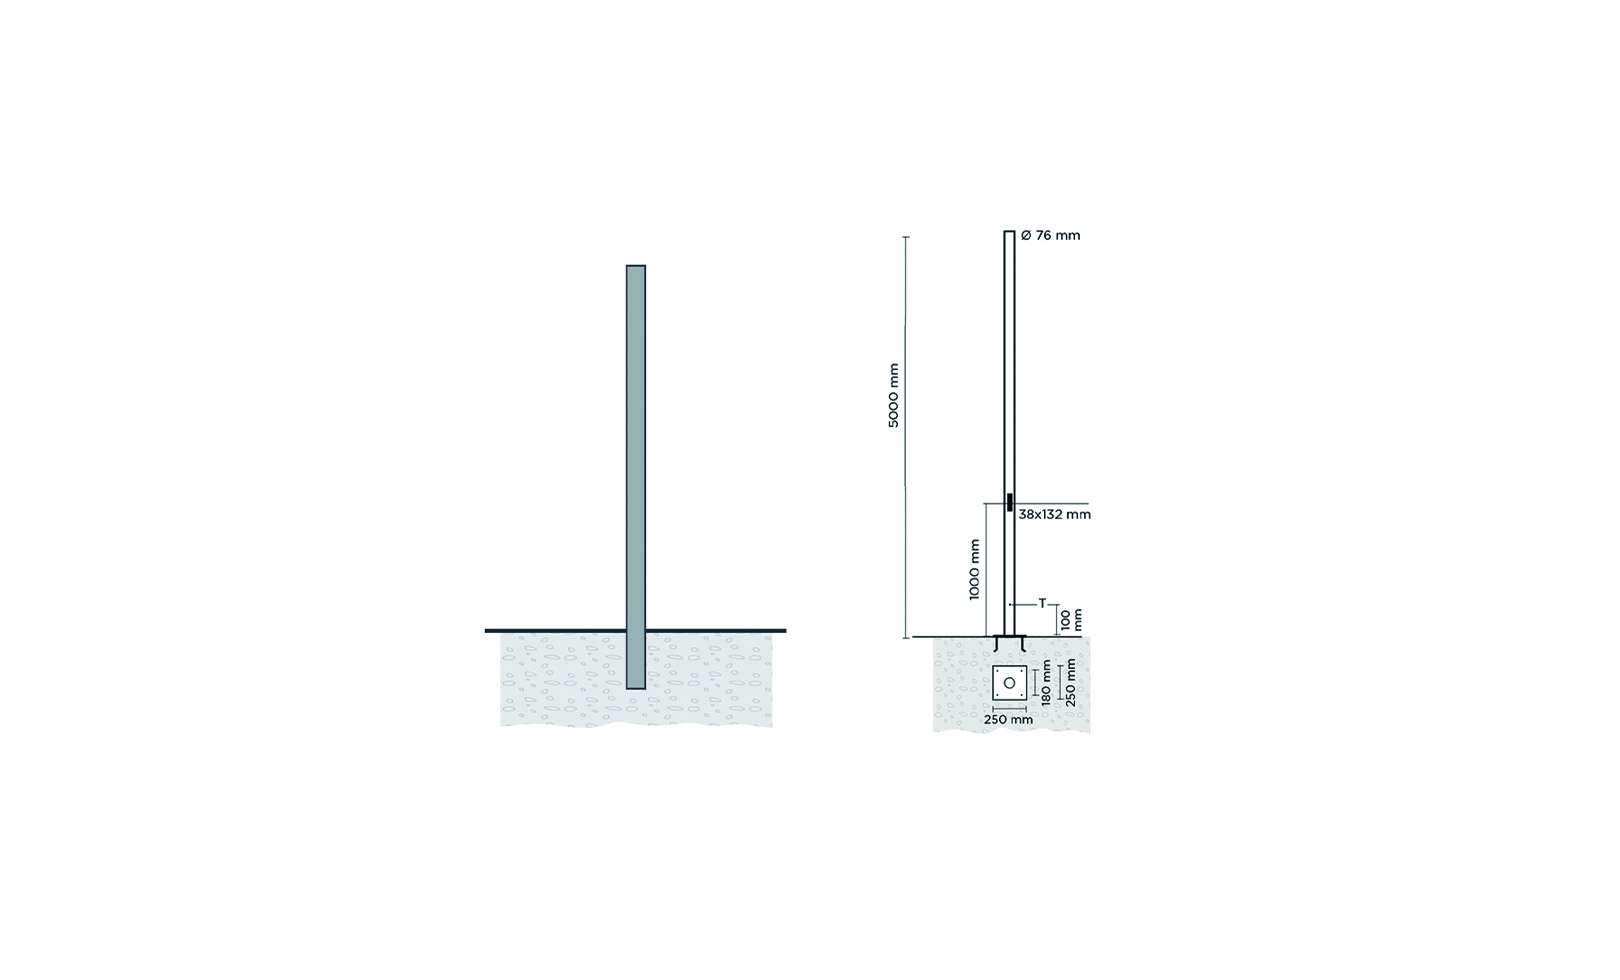 809906 CYLINDRICAL POLE 5 METERS WITH BASE-PLATE 1